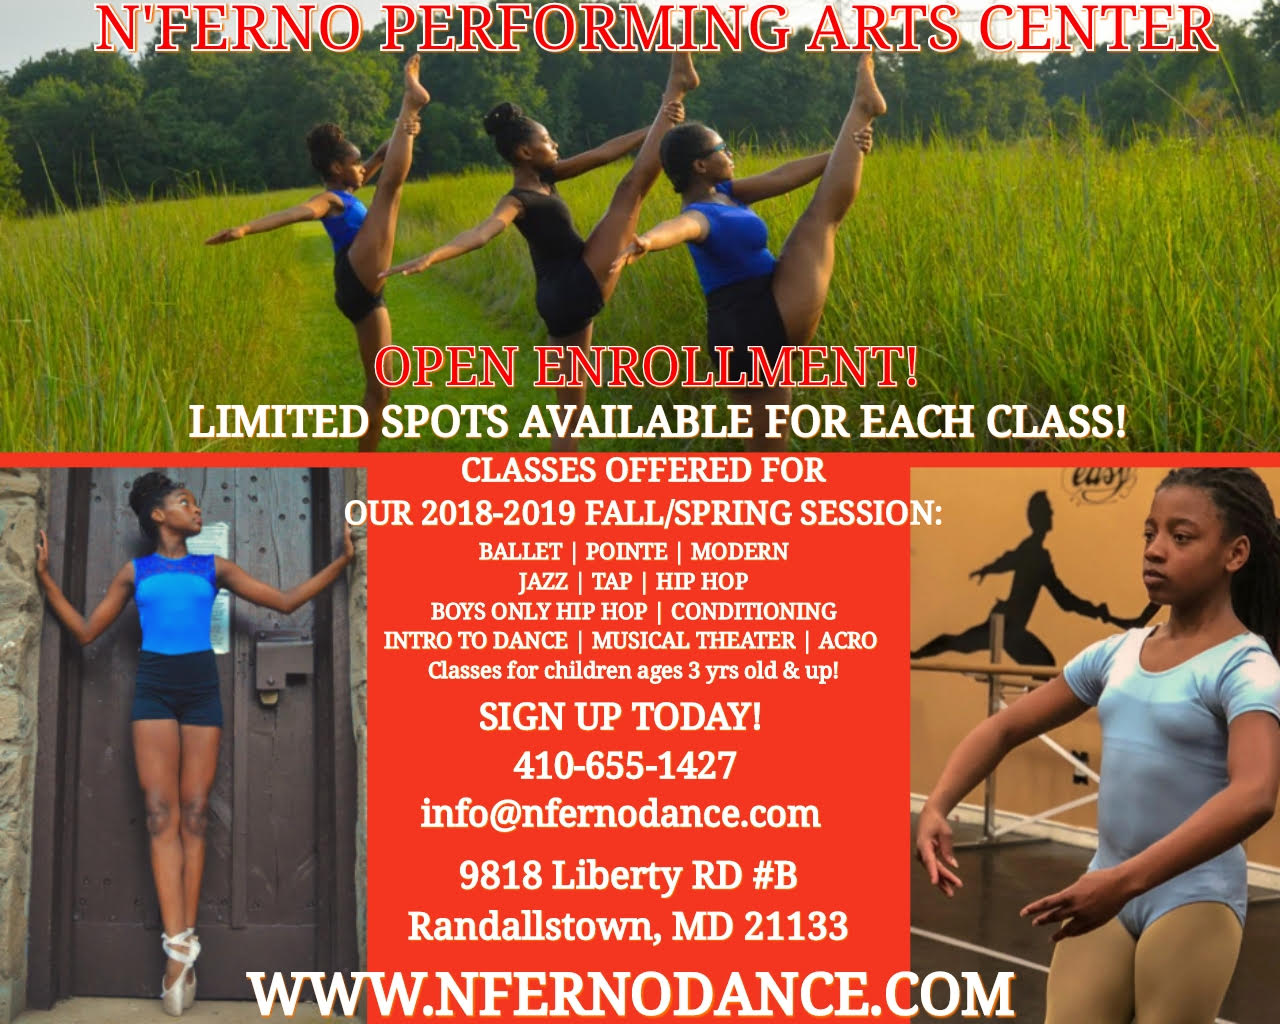 N'ferno Dance Performing Arts Center Open Enrollment